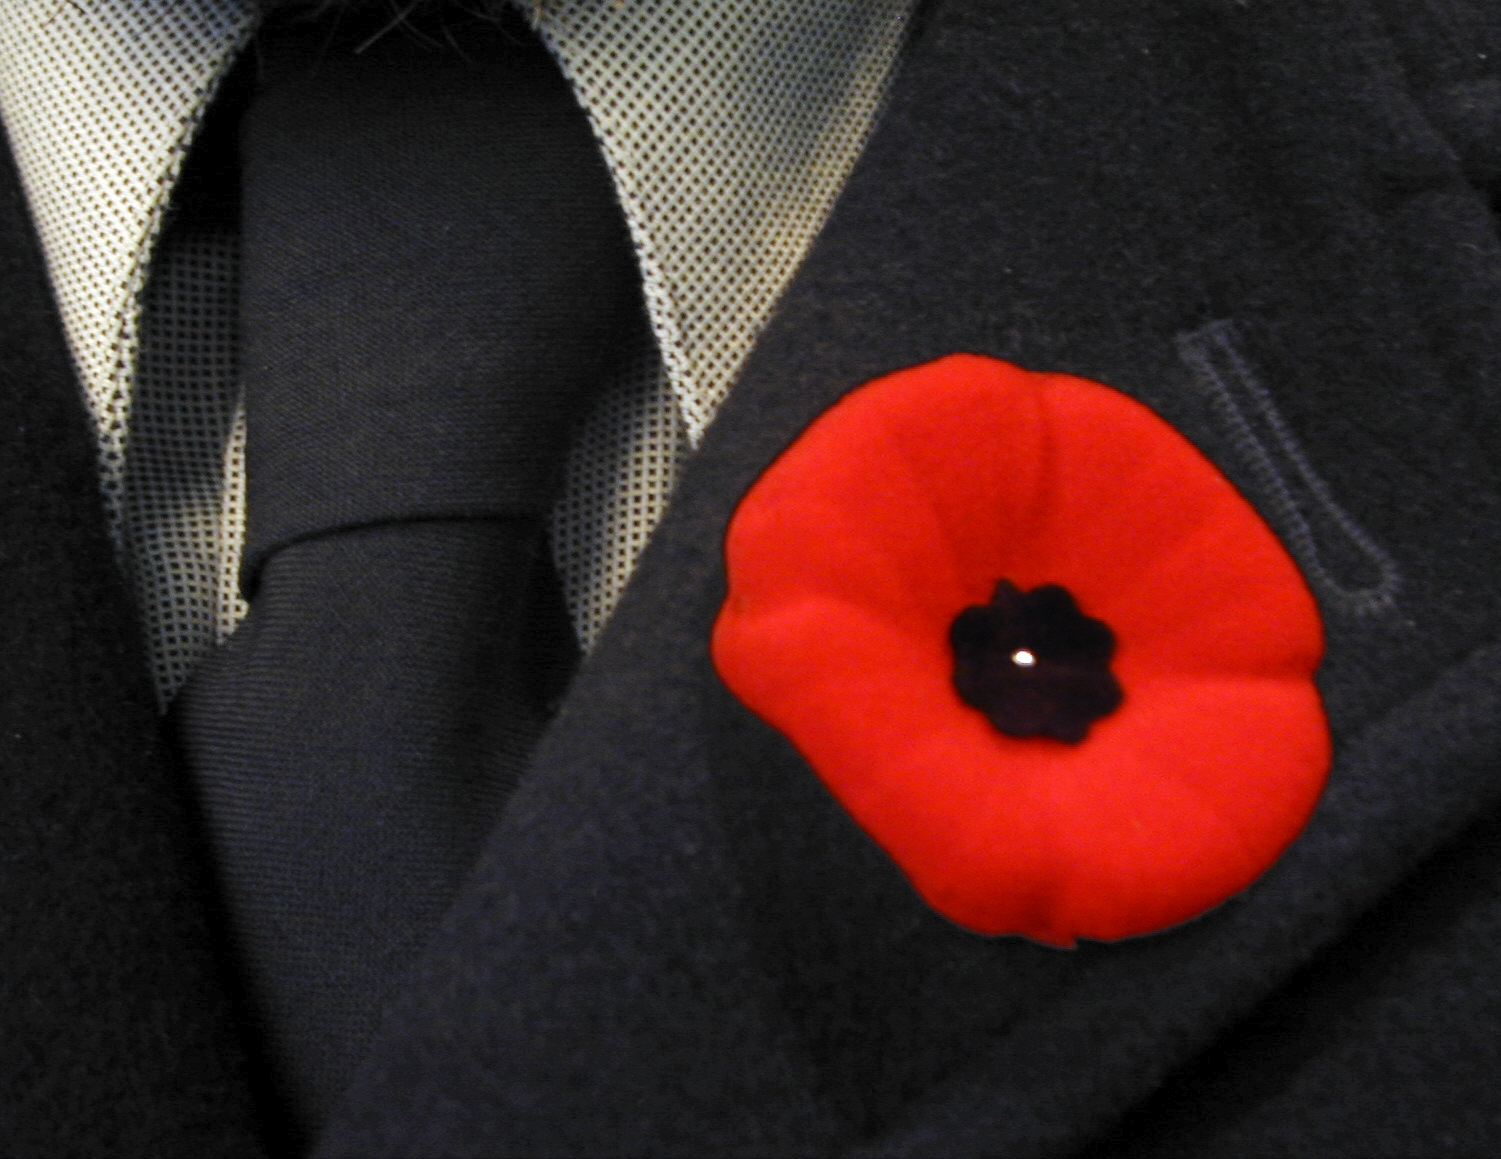 Lest we forget, another way to remember war veterans in Kamloops